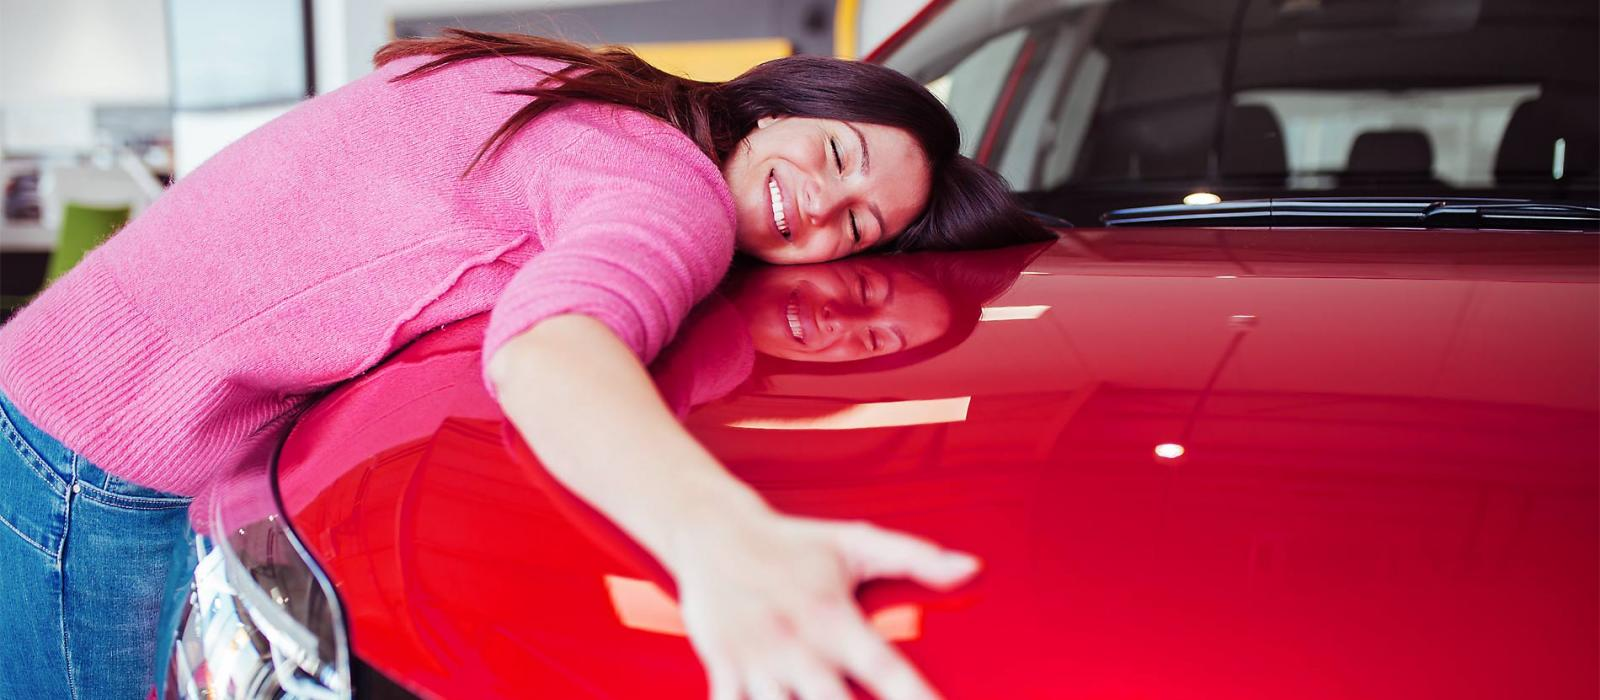 New Life Auto Sales Used Cars Charleston Scpre Owned Autos South